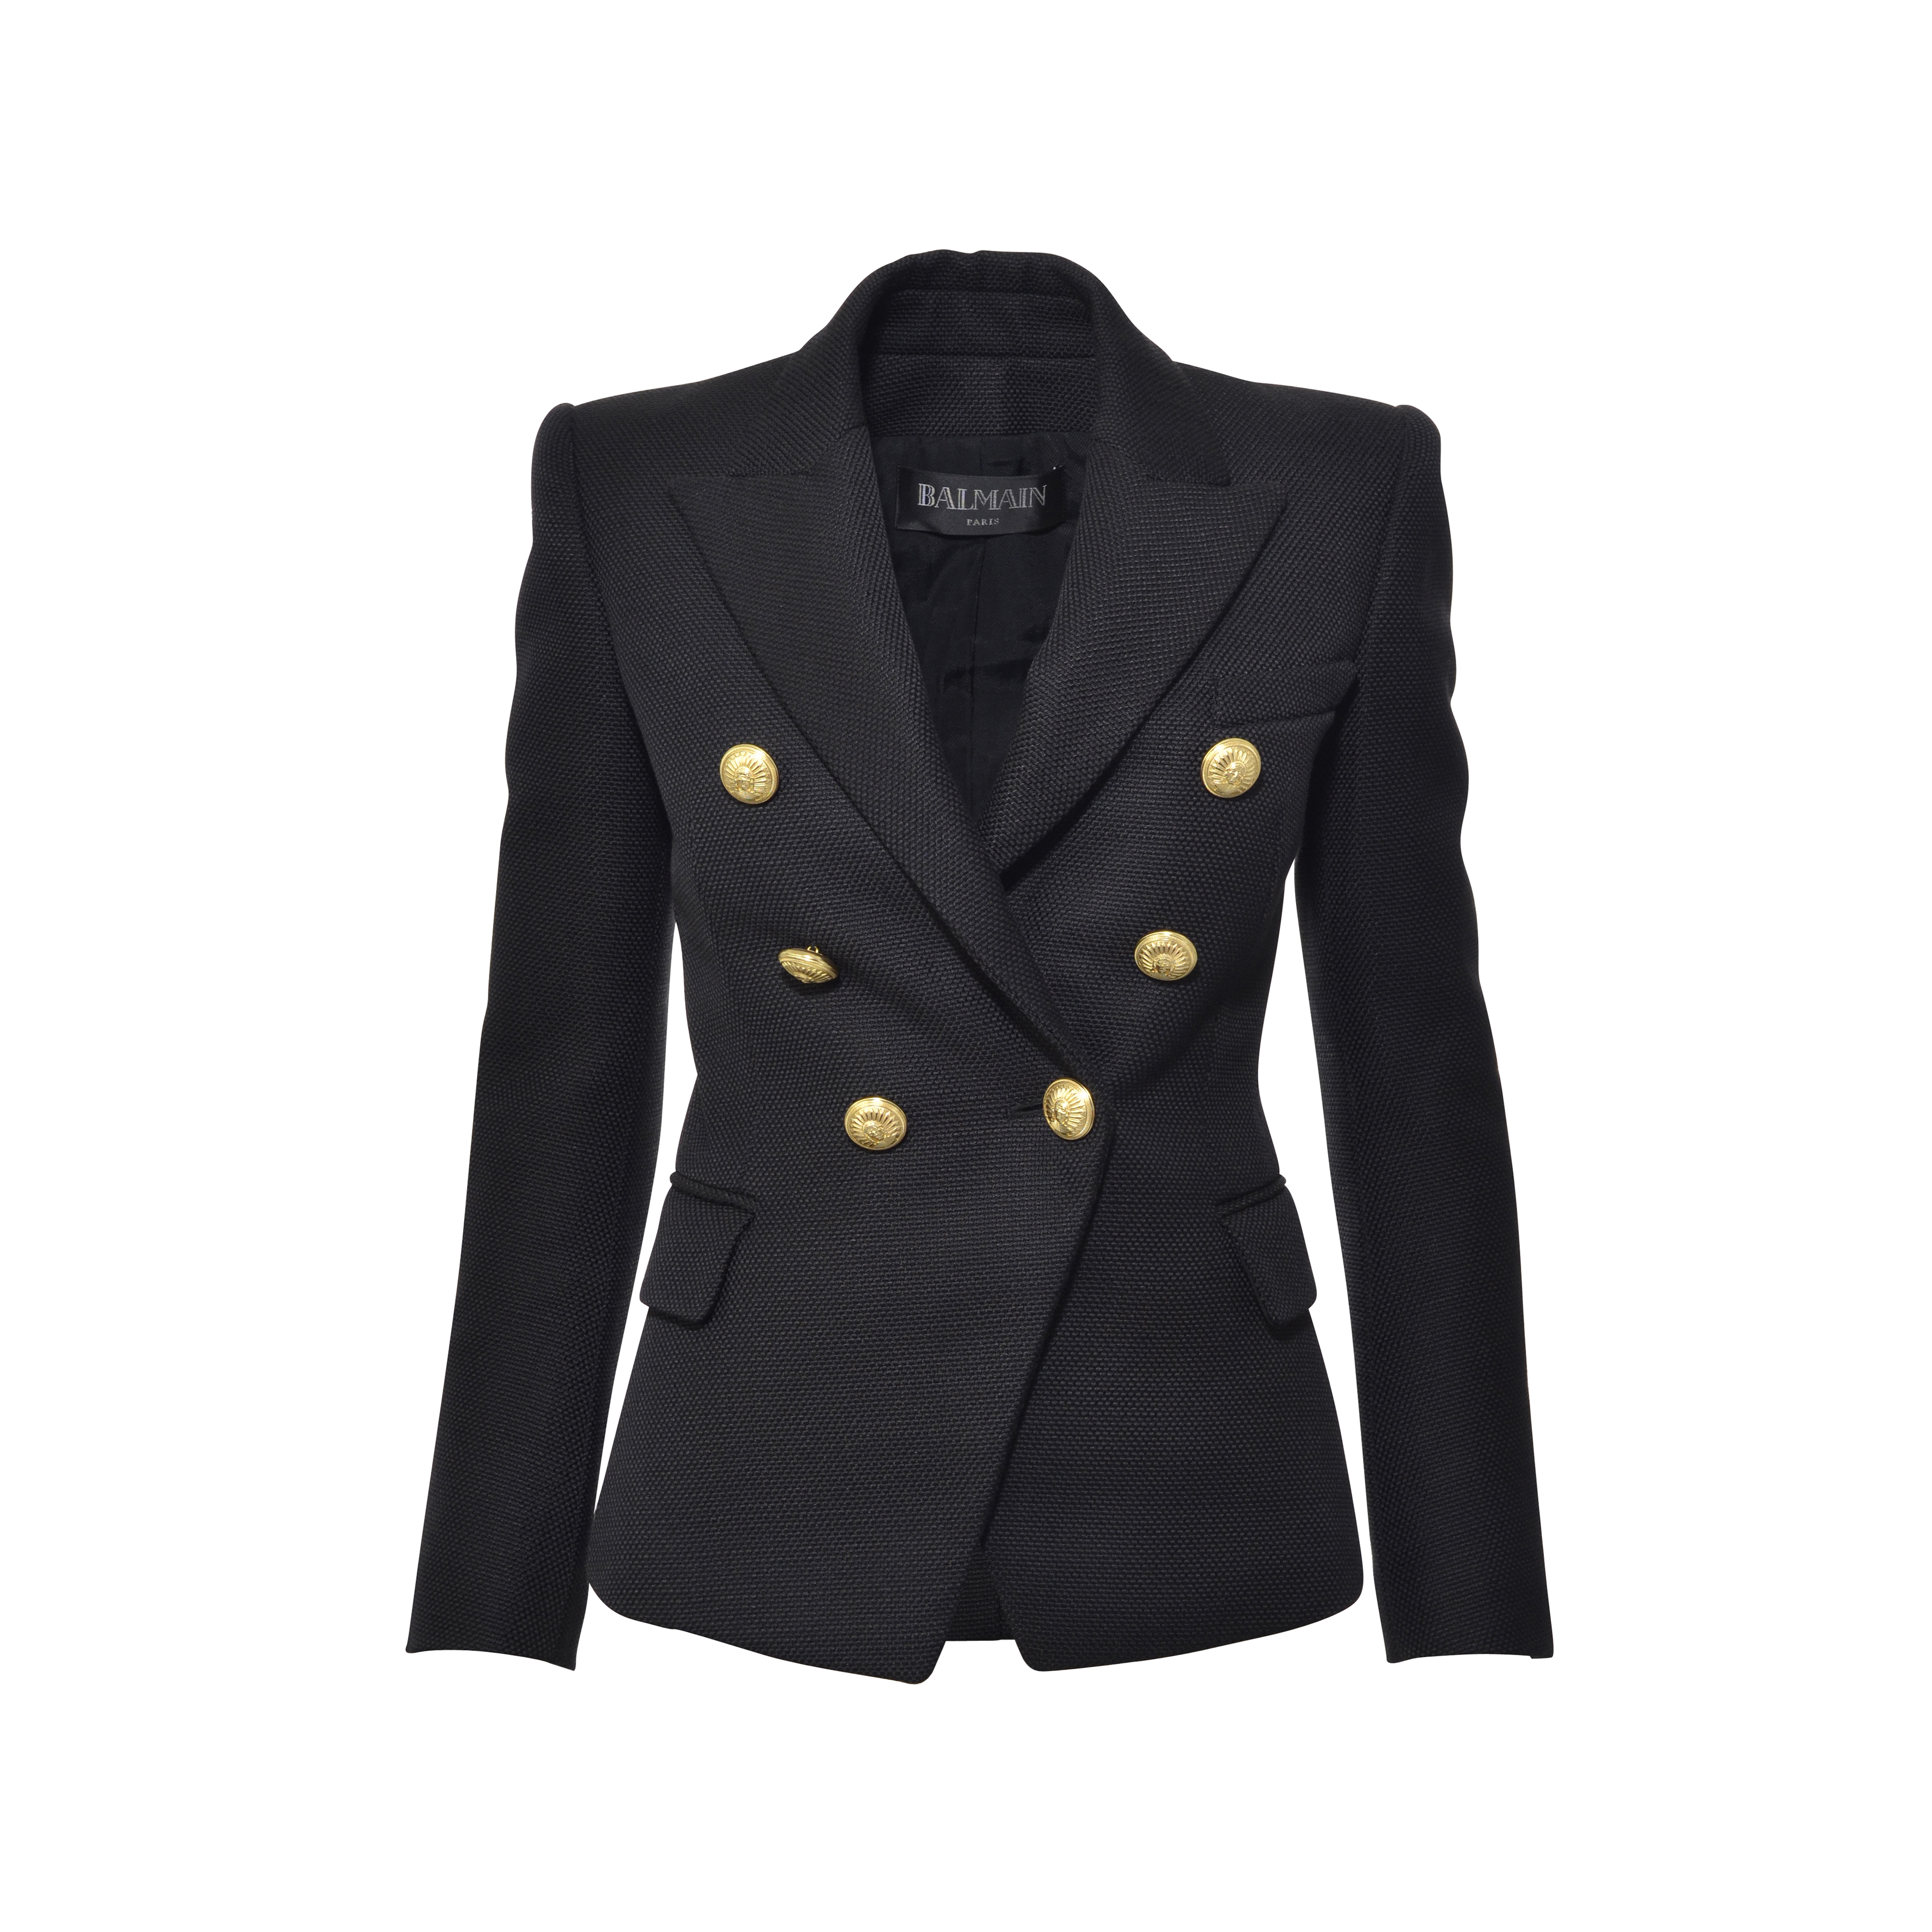 0229bd35f Authentic Second Hand Balmain Double-Breasted Basketweave Blazer  (PSS-249-00019) | THE FIFTH COLLECTION